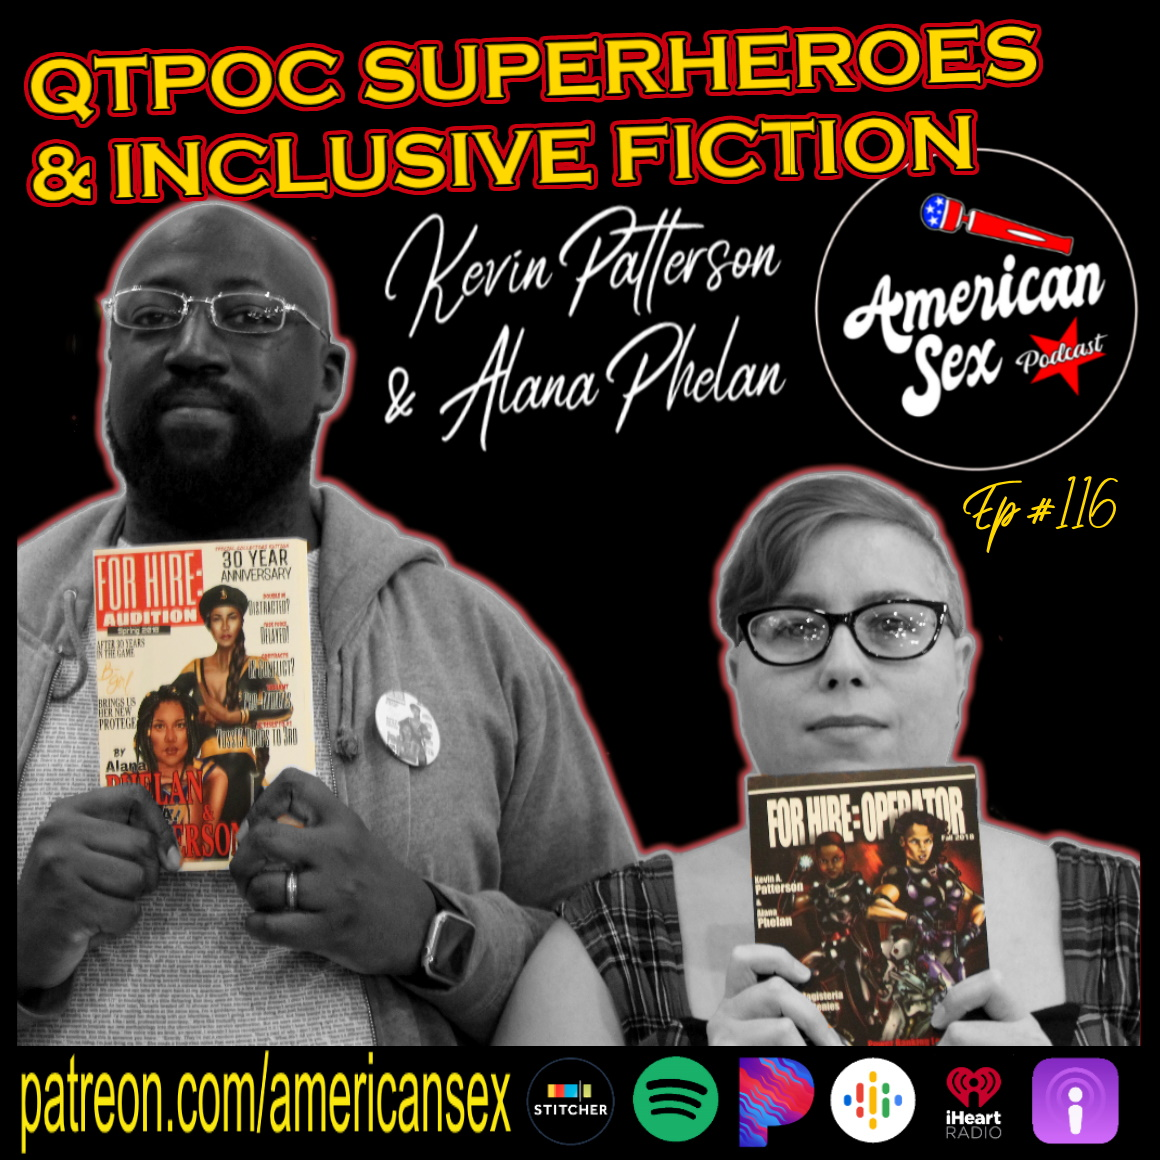 QTPOC Superheroes For Hire Series